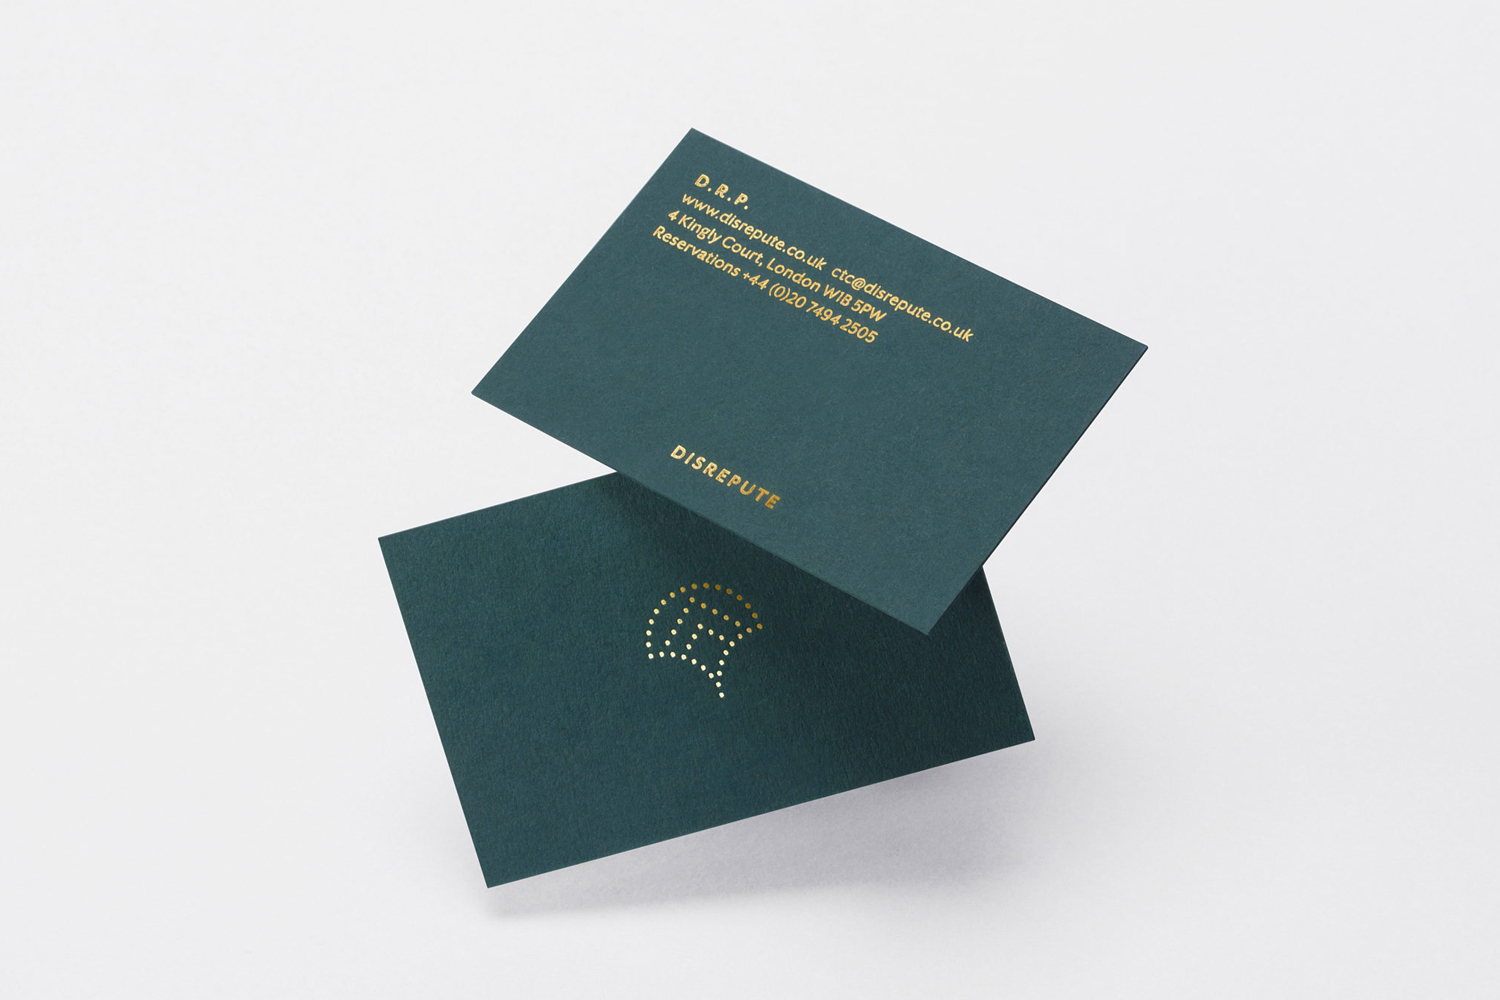 Brand identity and business cards with gold block foil detail by London-based studio Two Times Elliott for Soho members bar Disrepute